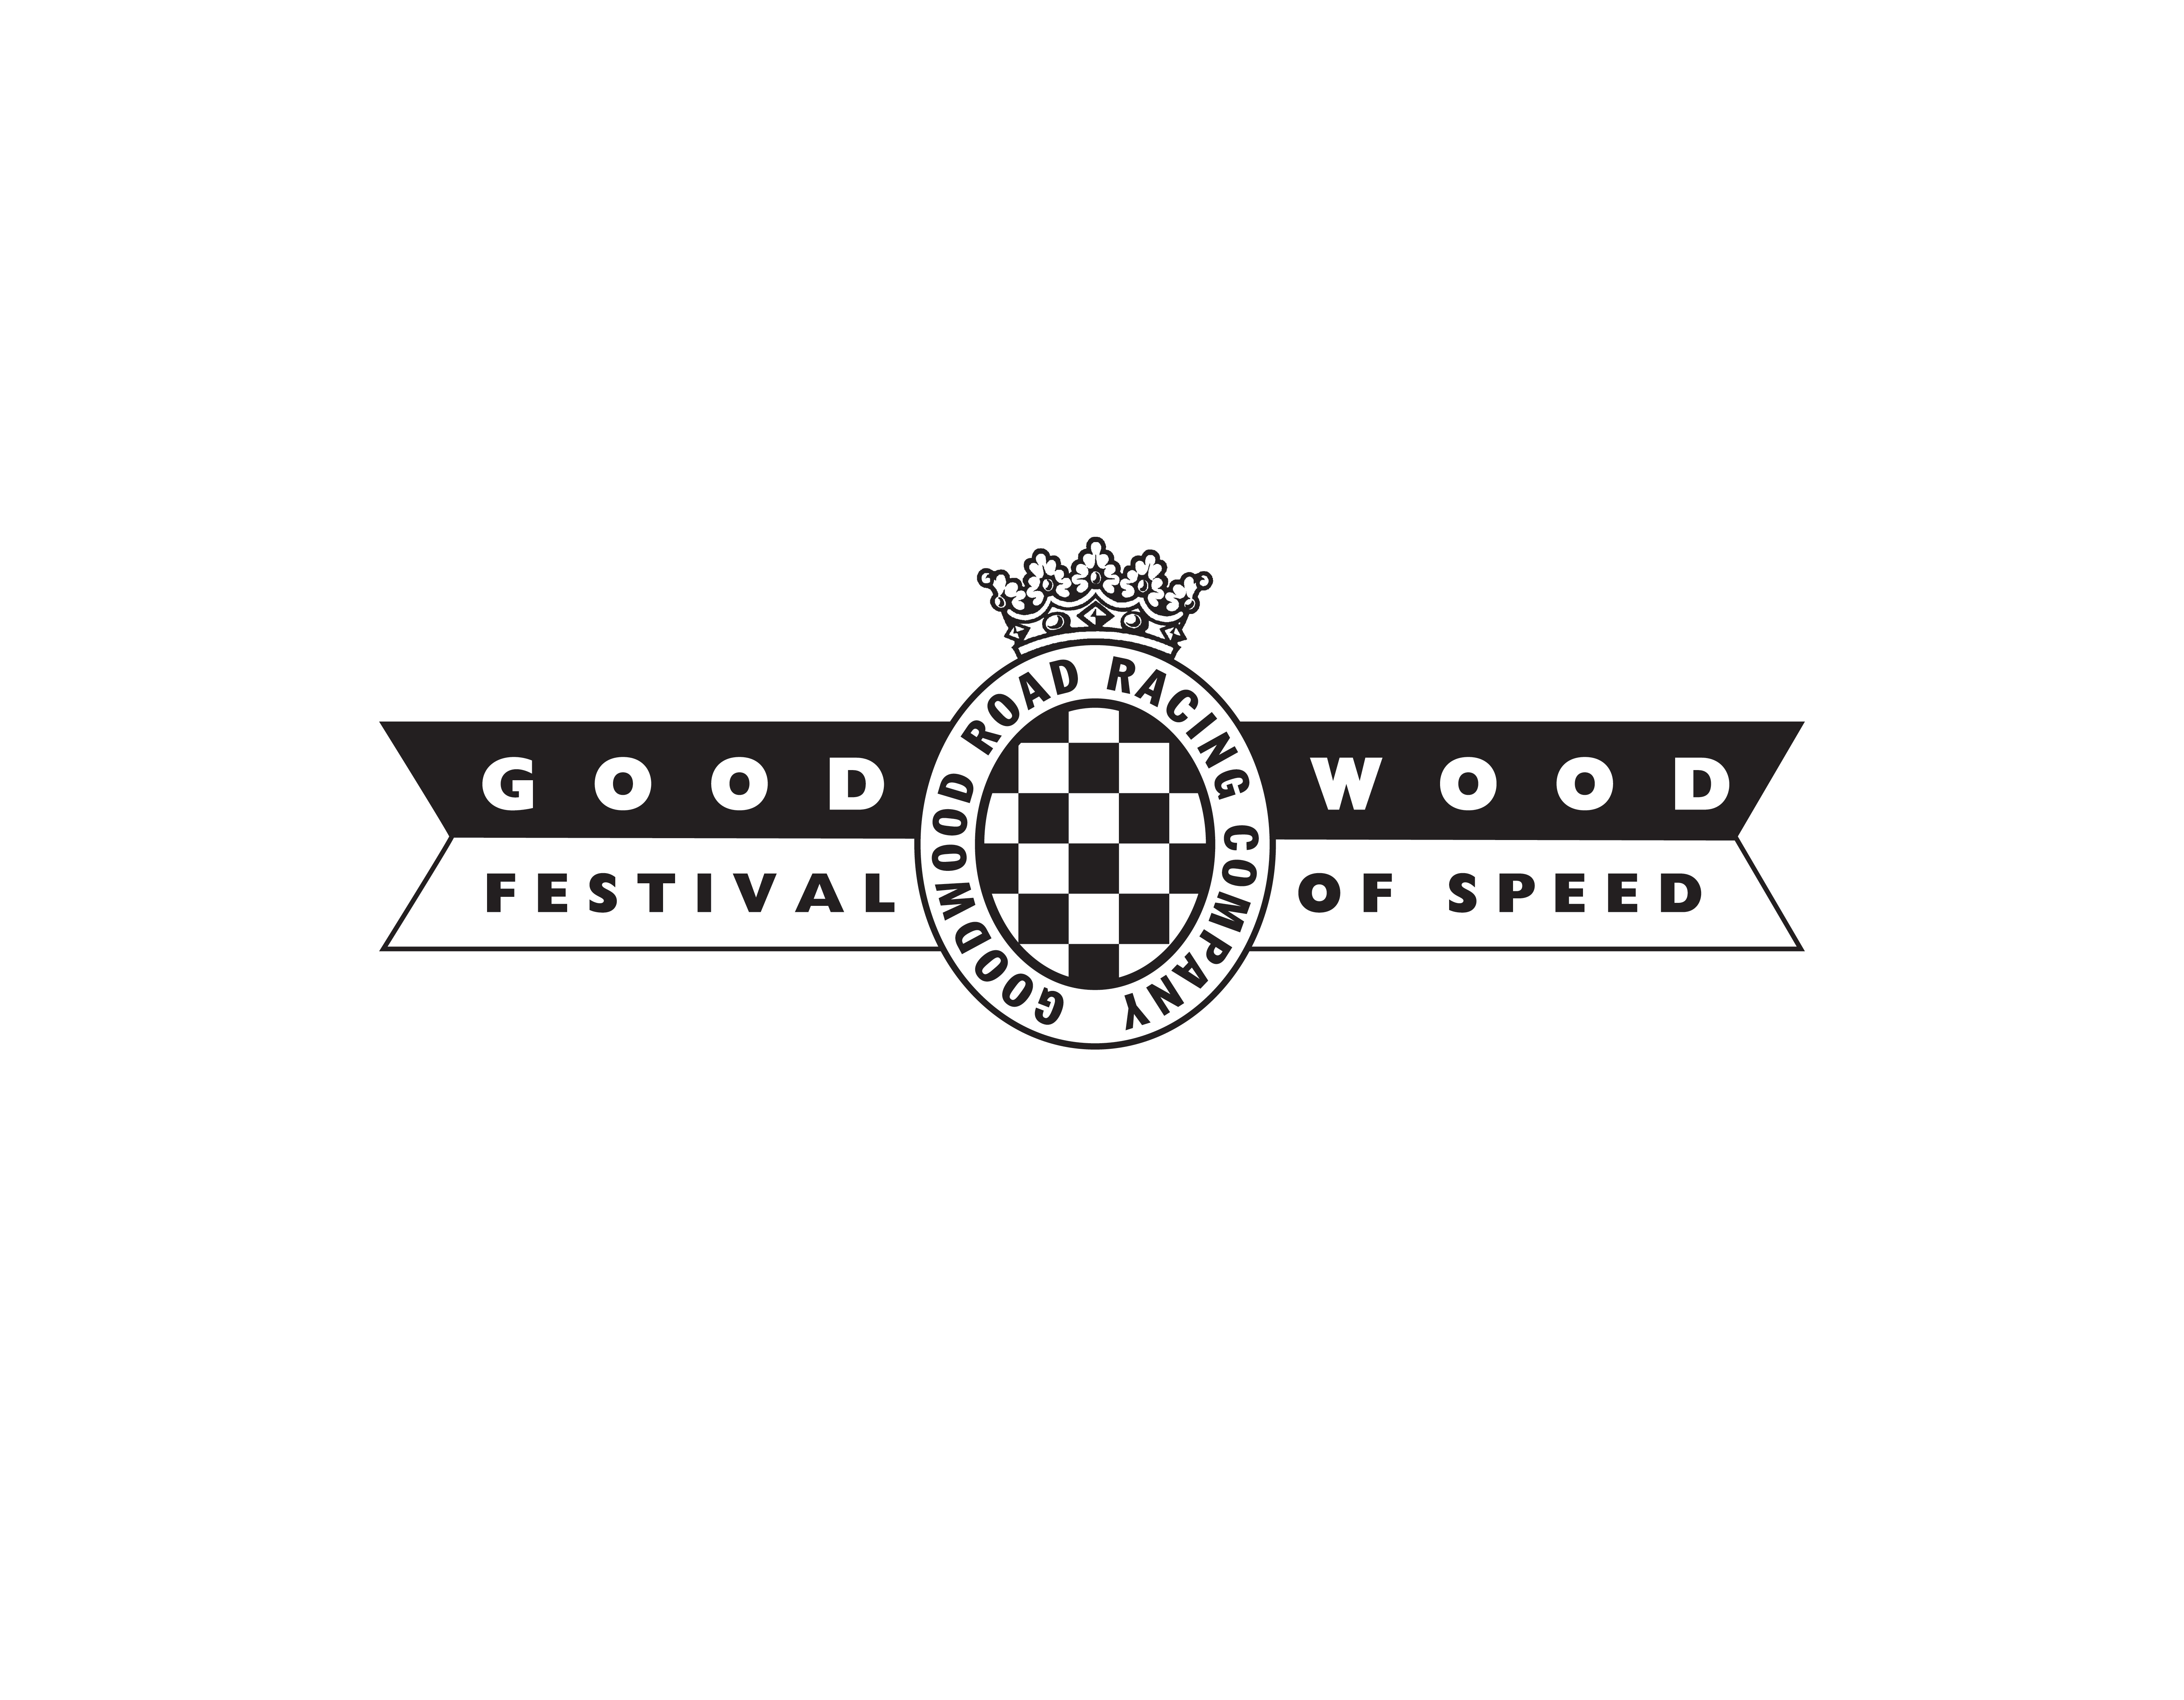 goodwood festival of speed hotel